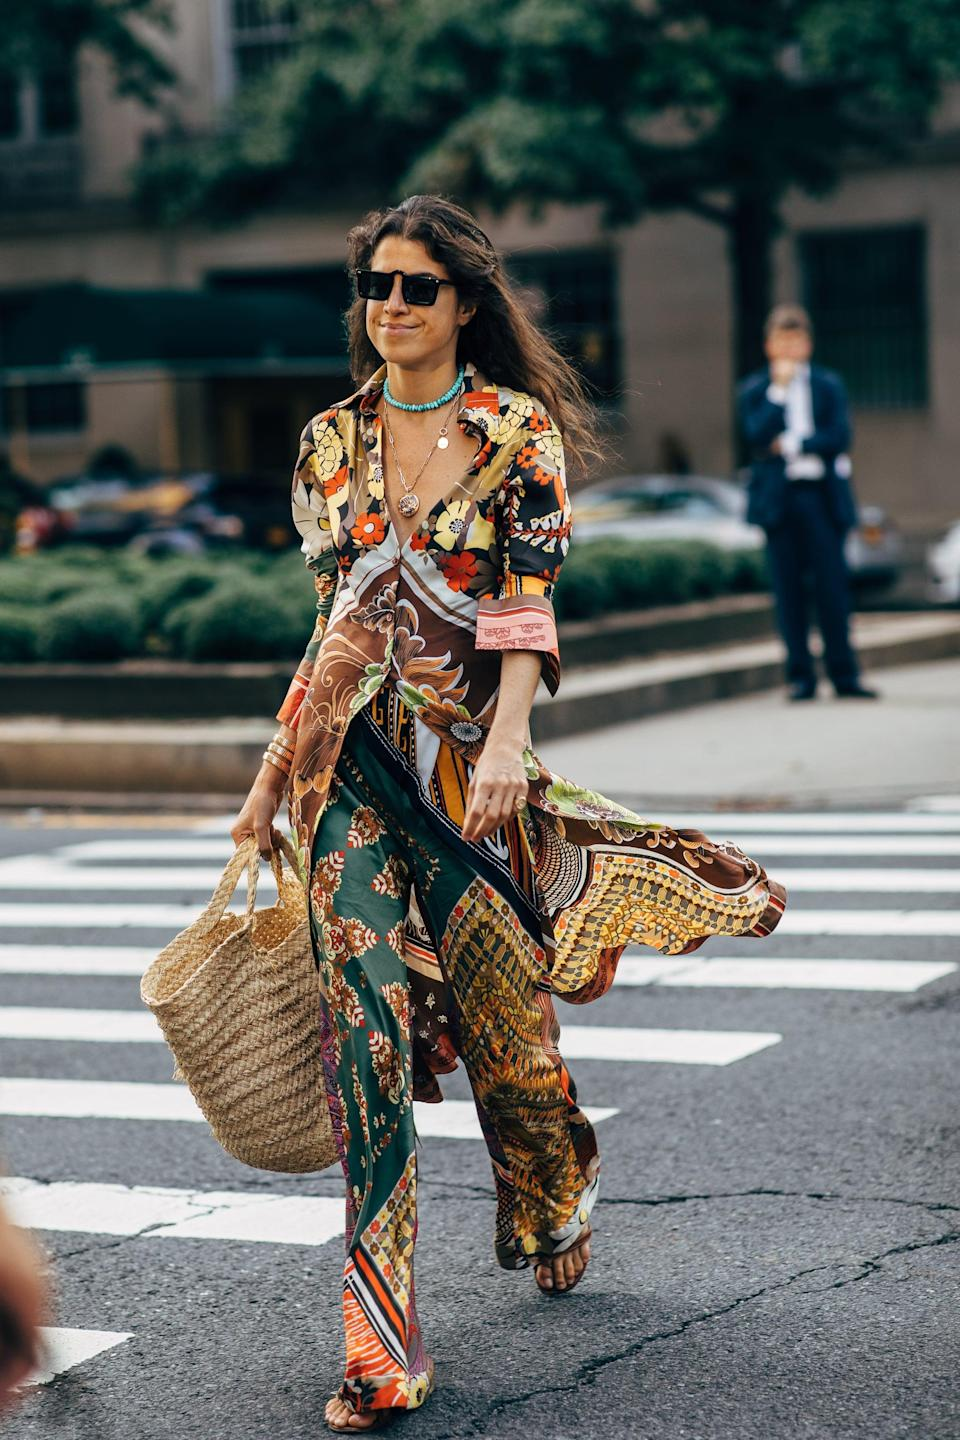 <p>Opt for silky fabrics in standout prints and colors - then top with ample jewels. </p>